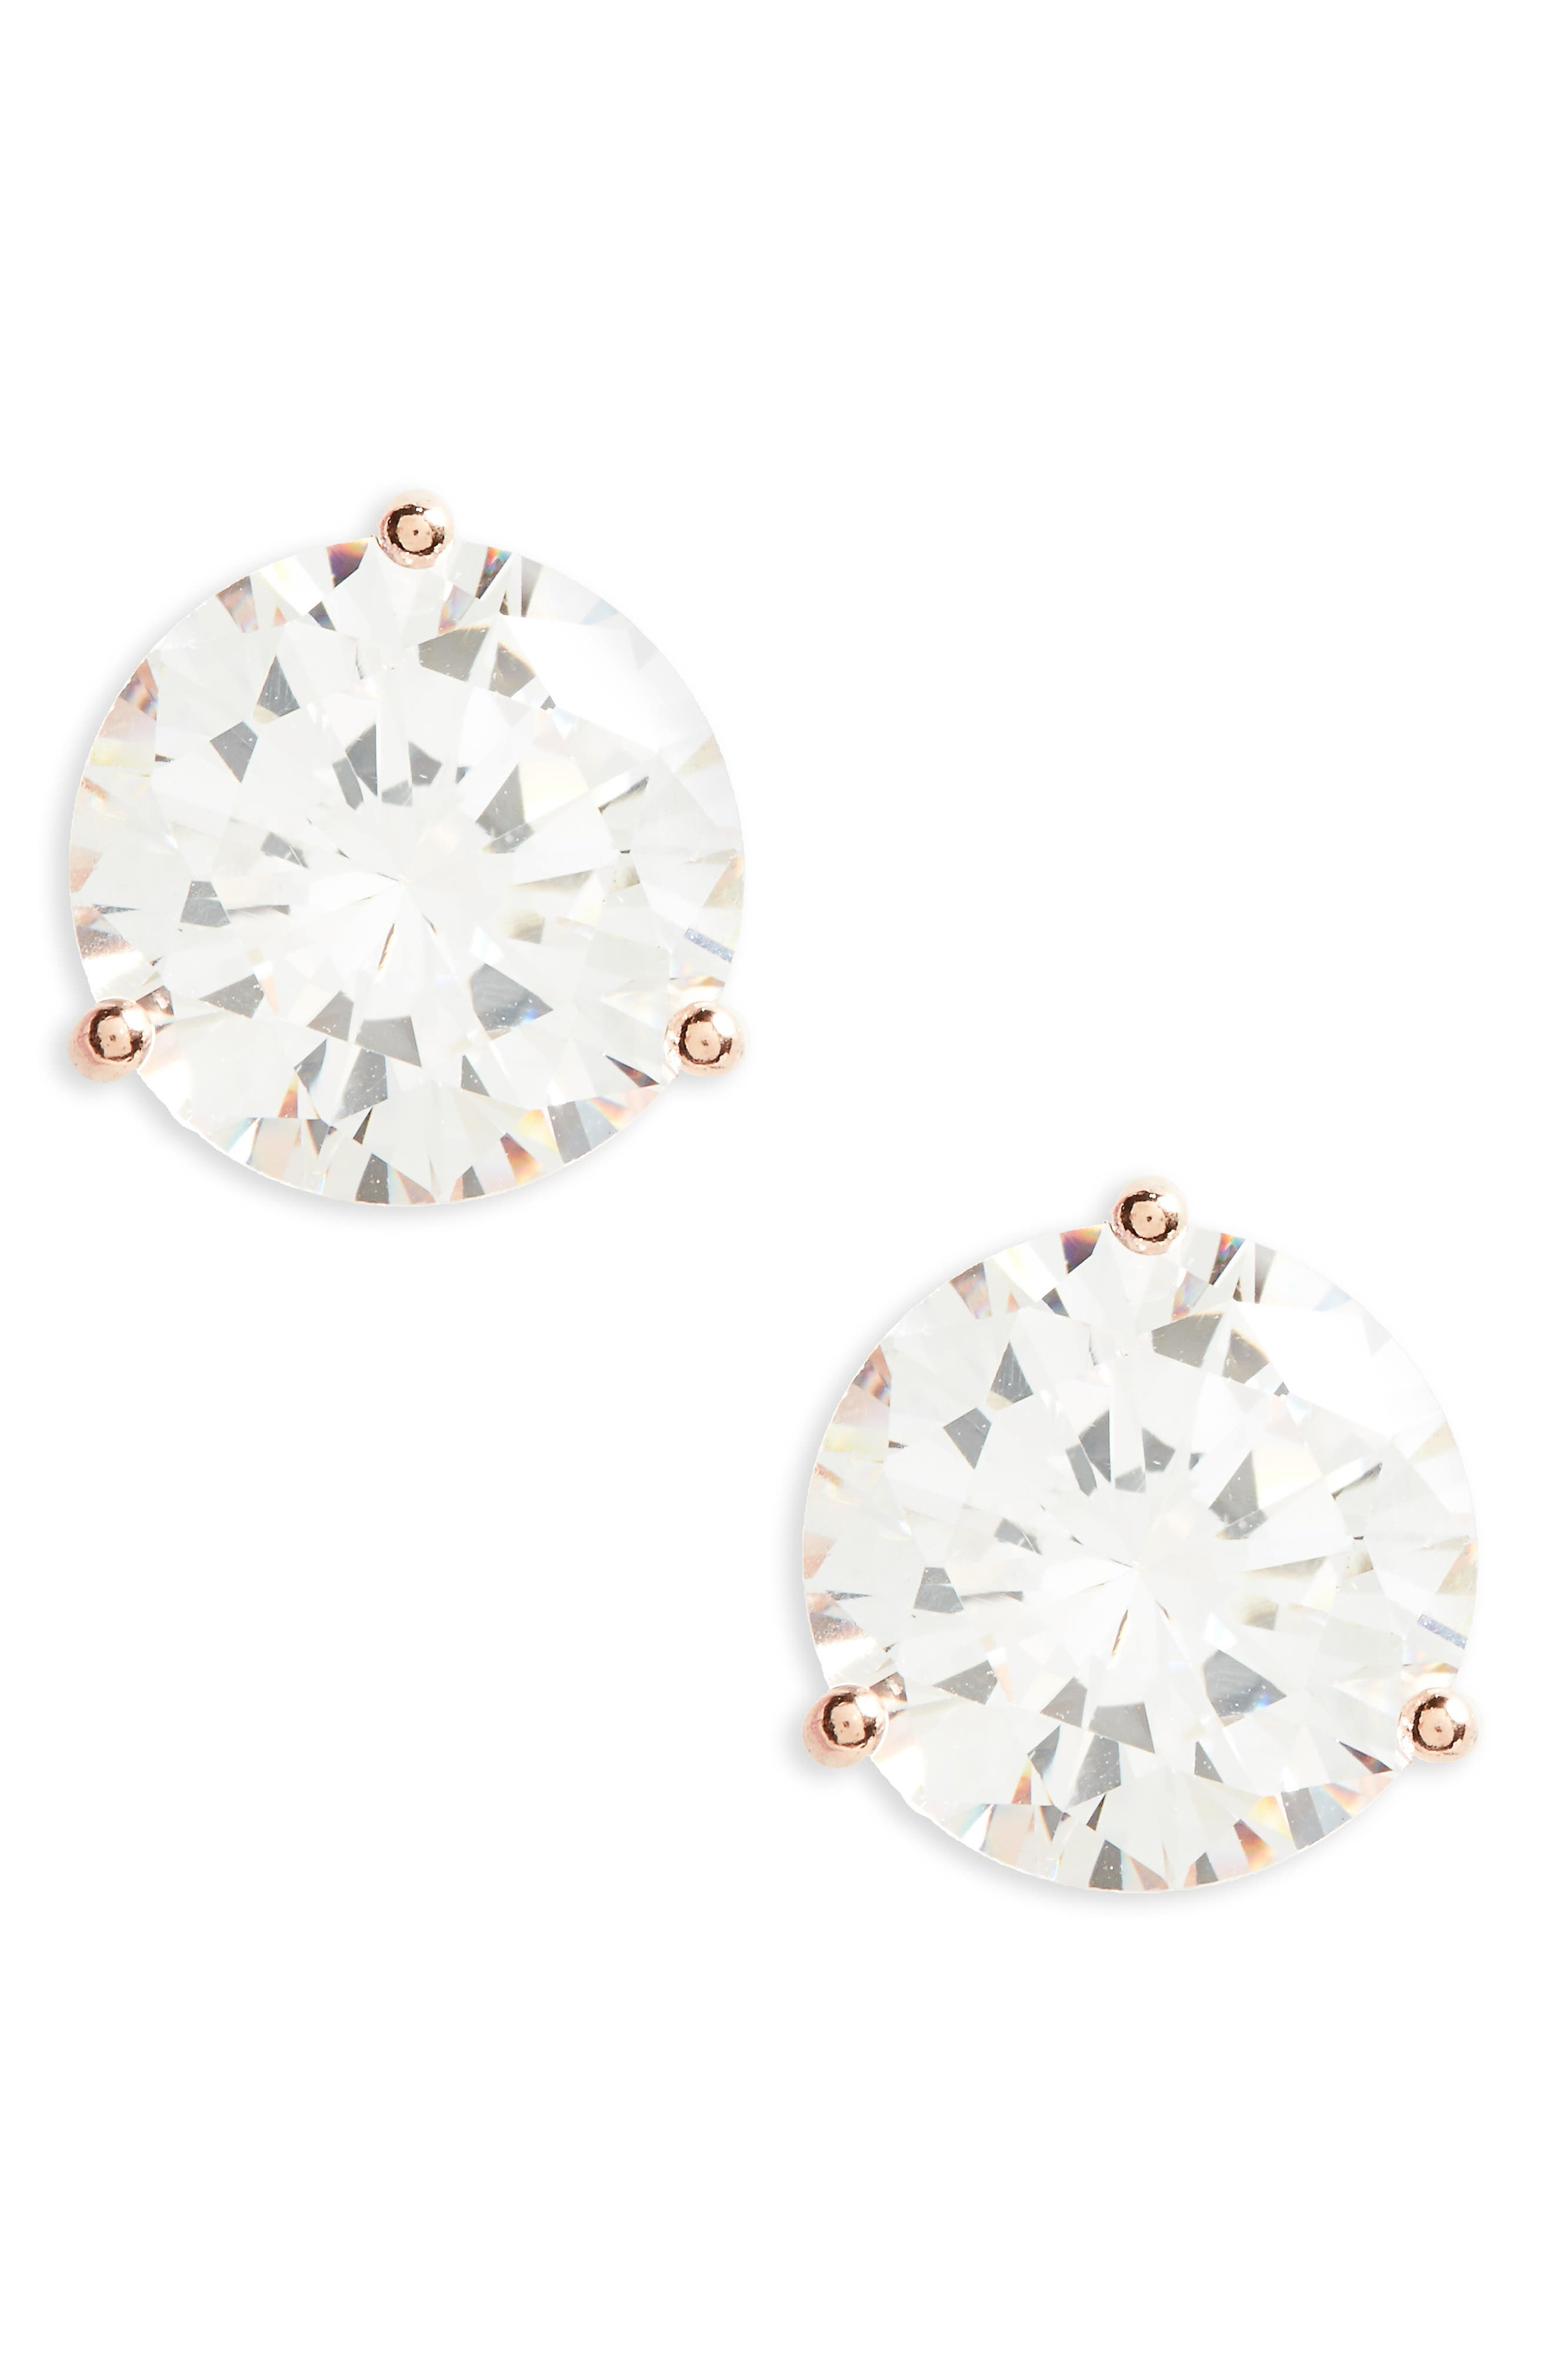 8ct tw Cubic Zirconia Stud Earrings,                             Main thumbnail 1, color,                             650